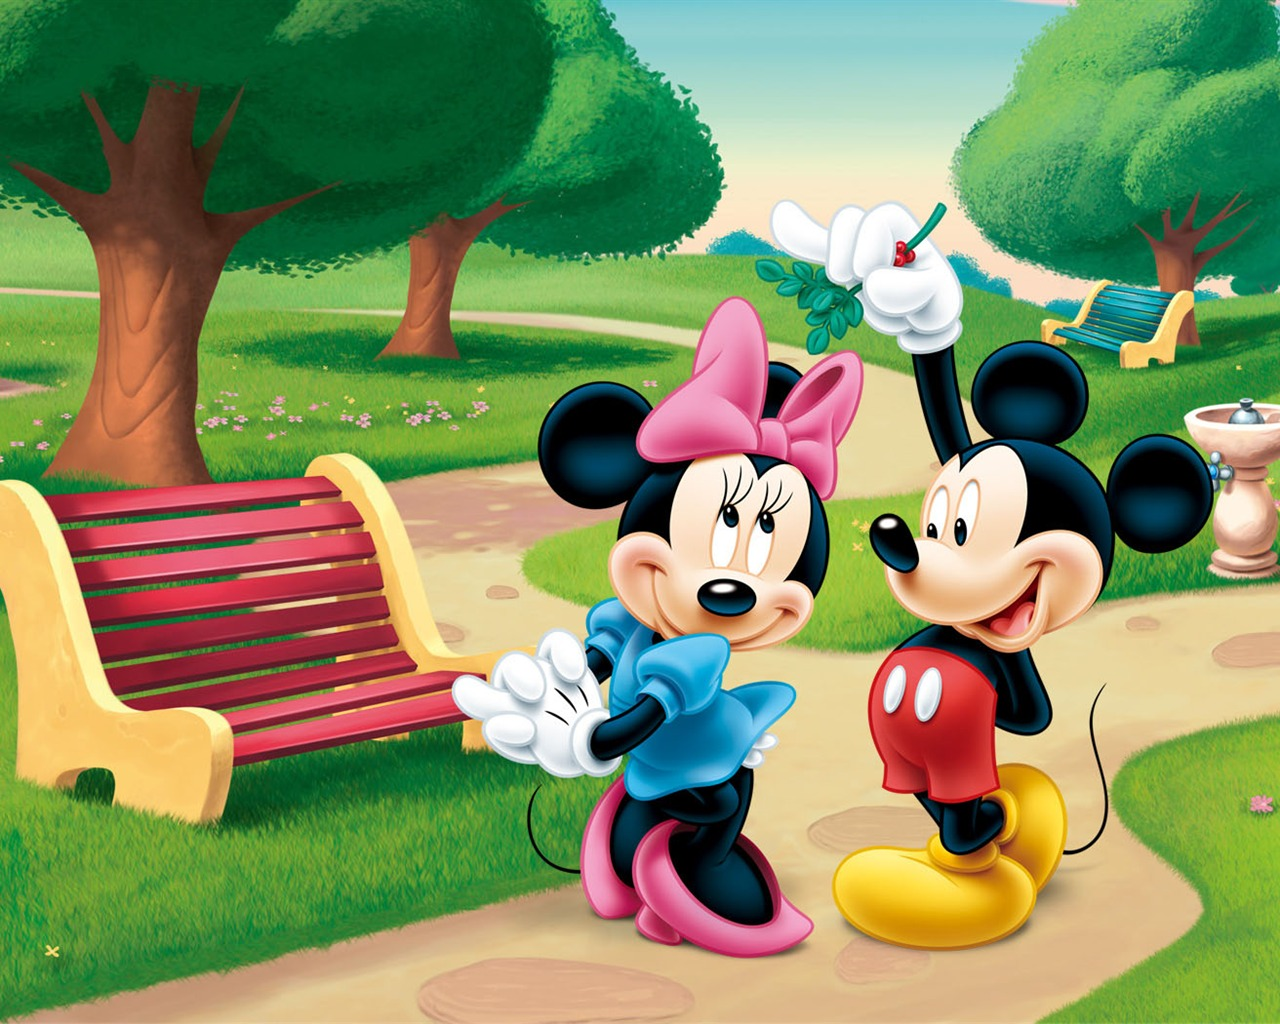 Cute Minnie And Mickey Mouse Wallpaper ディズニーアニメミッキーの壁紙 4 18 1280x1024 壁紙ダウンロード ディズニーアニメ